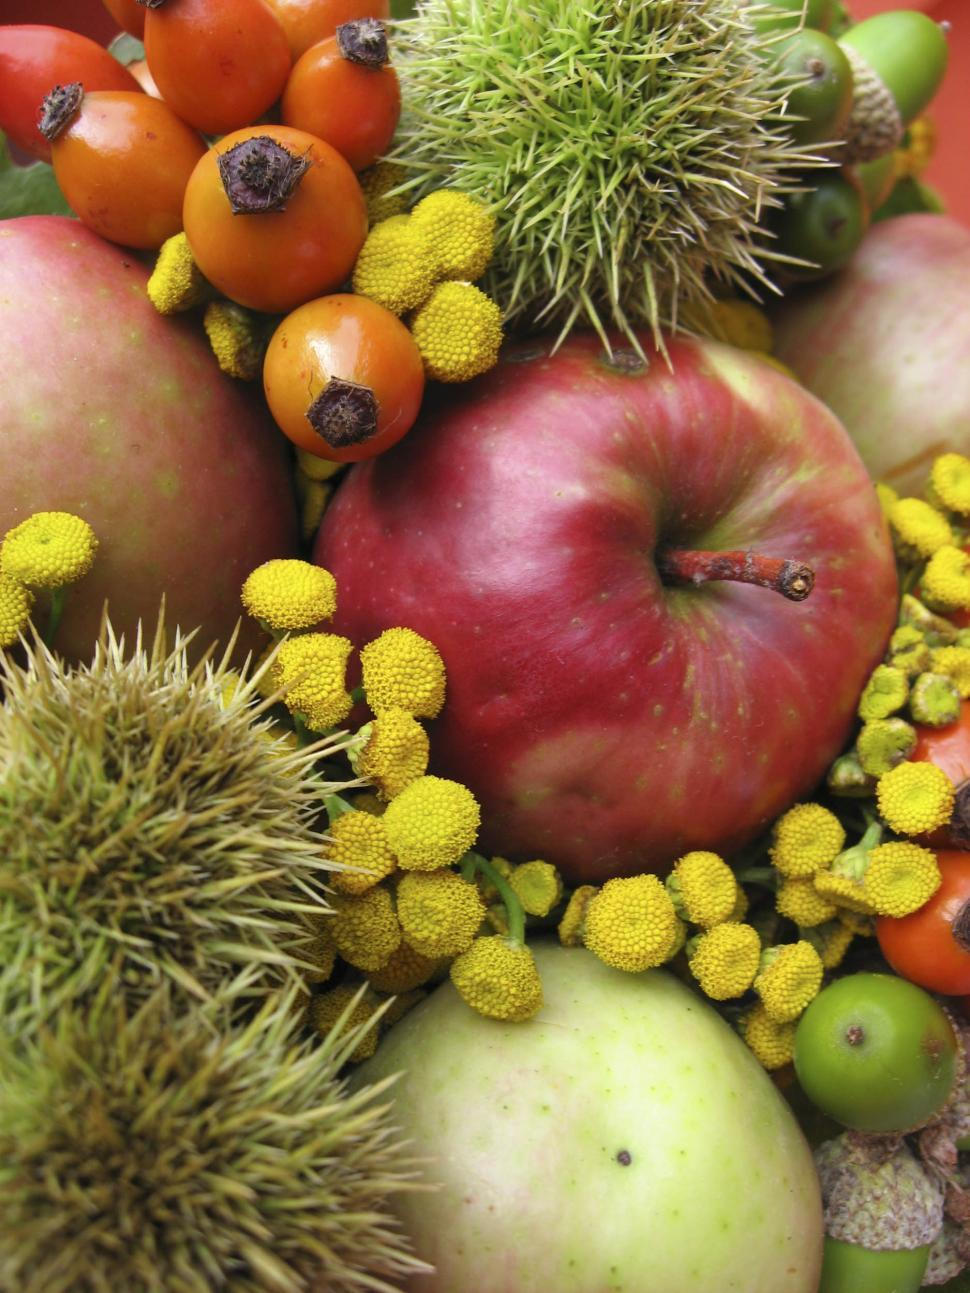 Download Free Stock HD Photo of fruits and flowers Online